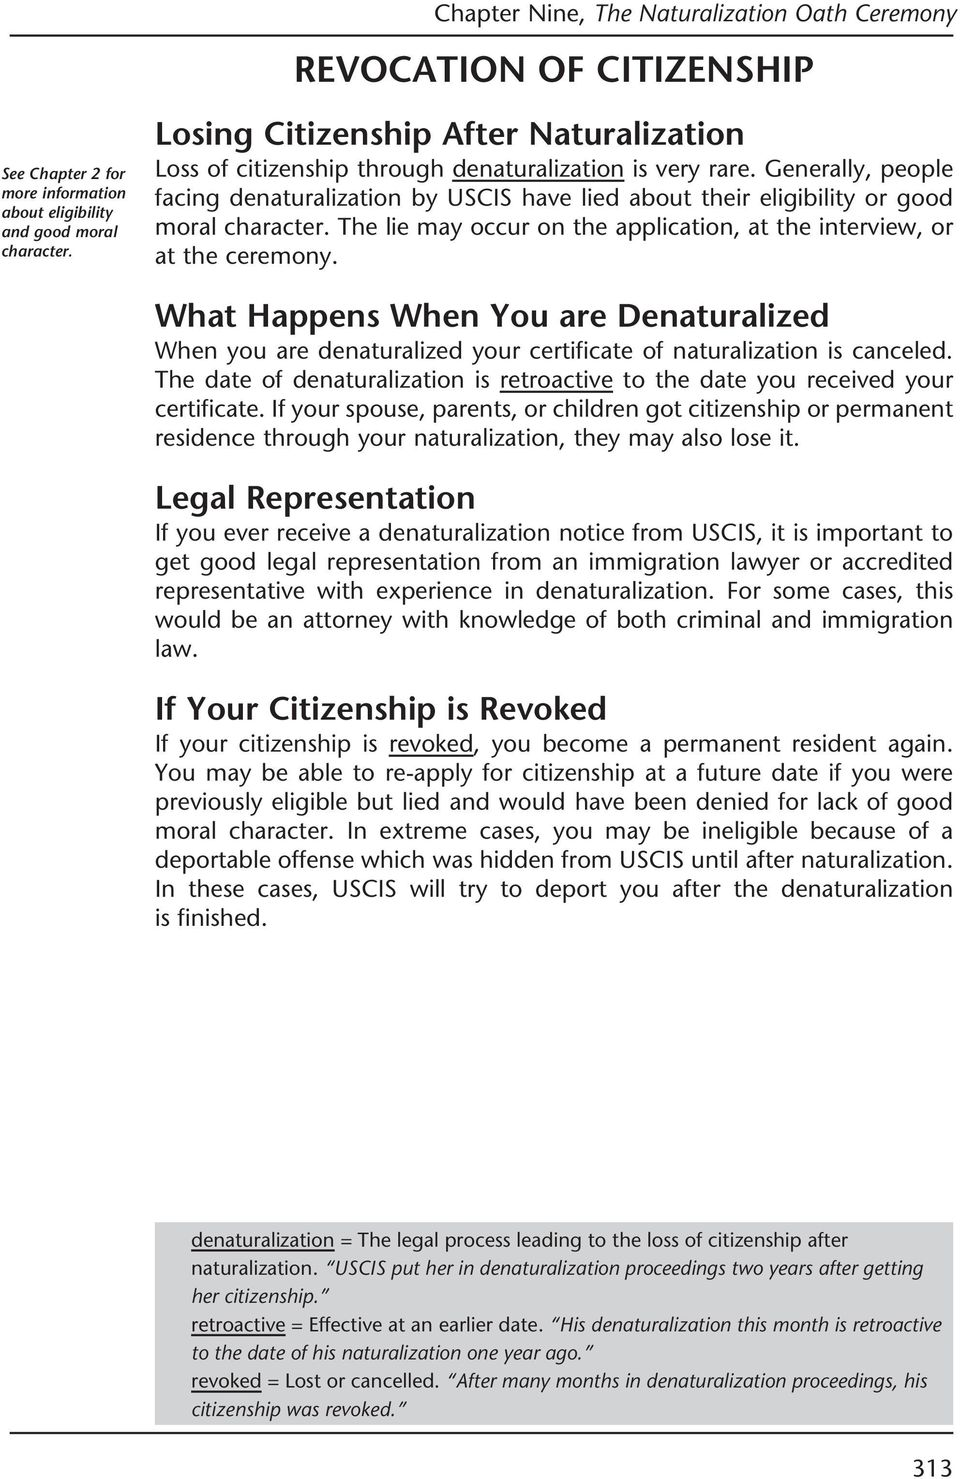 Generally, people facing denaturalization by USCIS have lied about their eligibility or good moral character. The lie may occur on the application, at the interview, or at the ceremony.